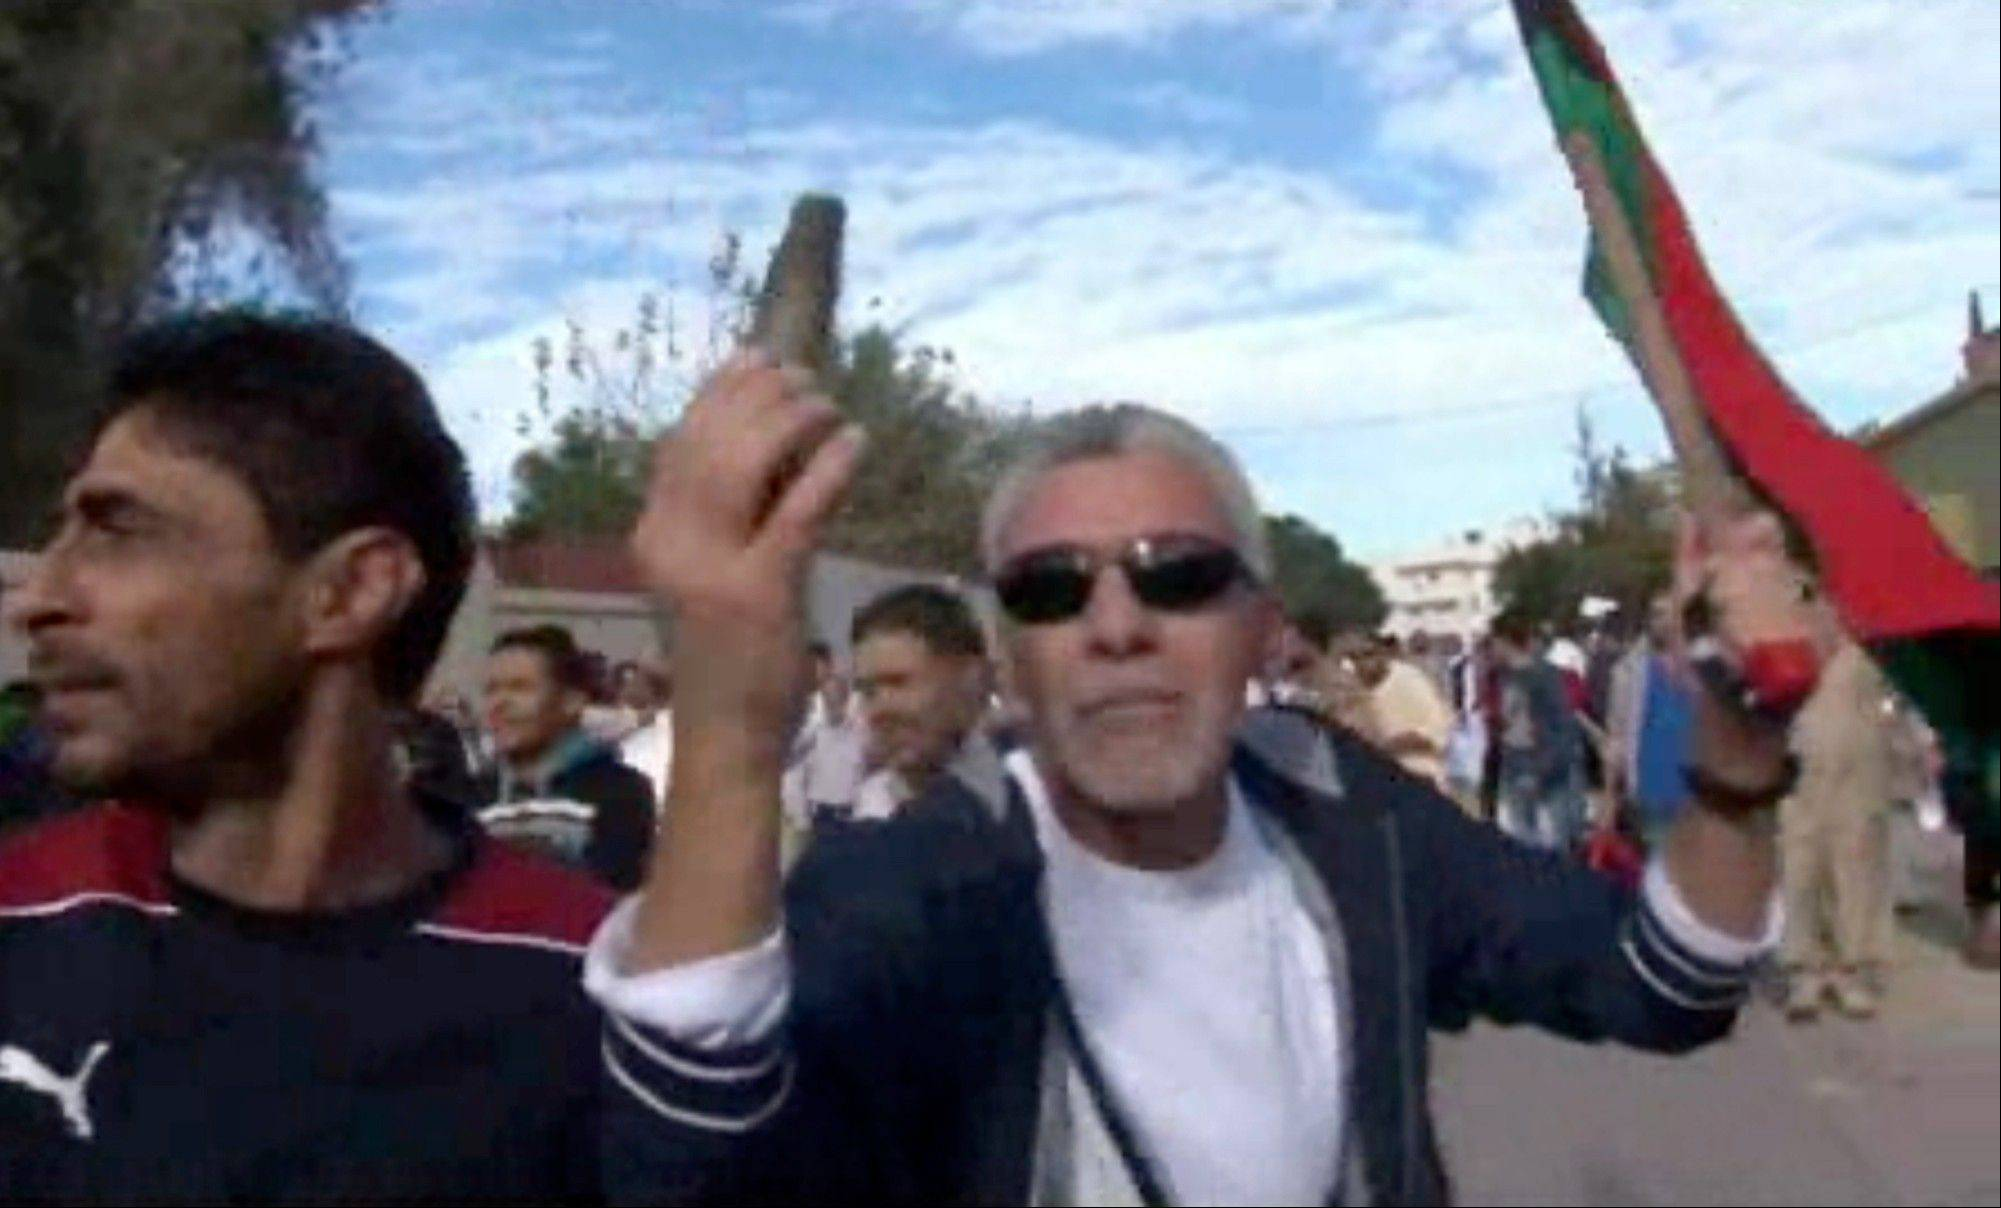 A protester holds up spent ammunition Friday in Tripoli, Libya after militiamen attacked peaceful protesters demanding the disbanding of the country's rampant armed groups.